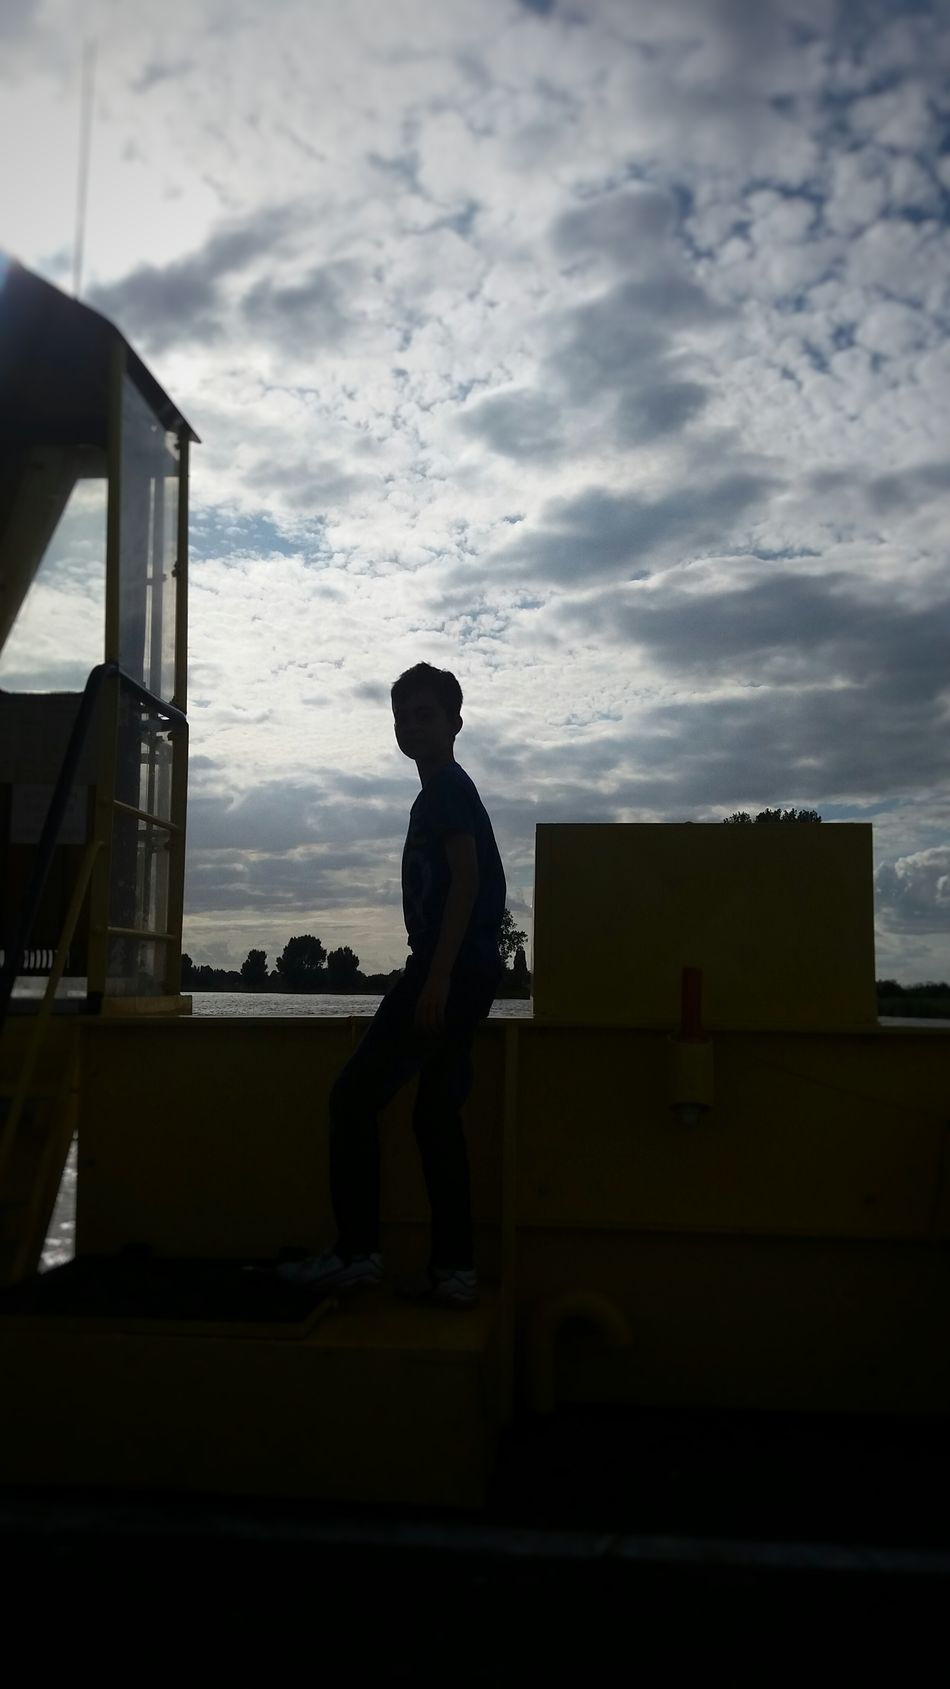 Boat Ride Sky And Clouds Taking Photos Check This Out Pictureoftheday Ilovephotography Hello World ✌ Love <3 Hiiiii ✌ Ferry Boy Thats My Boy  💙💙